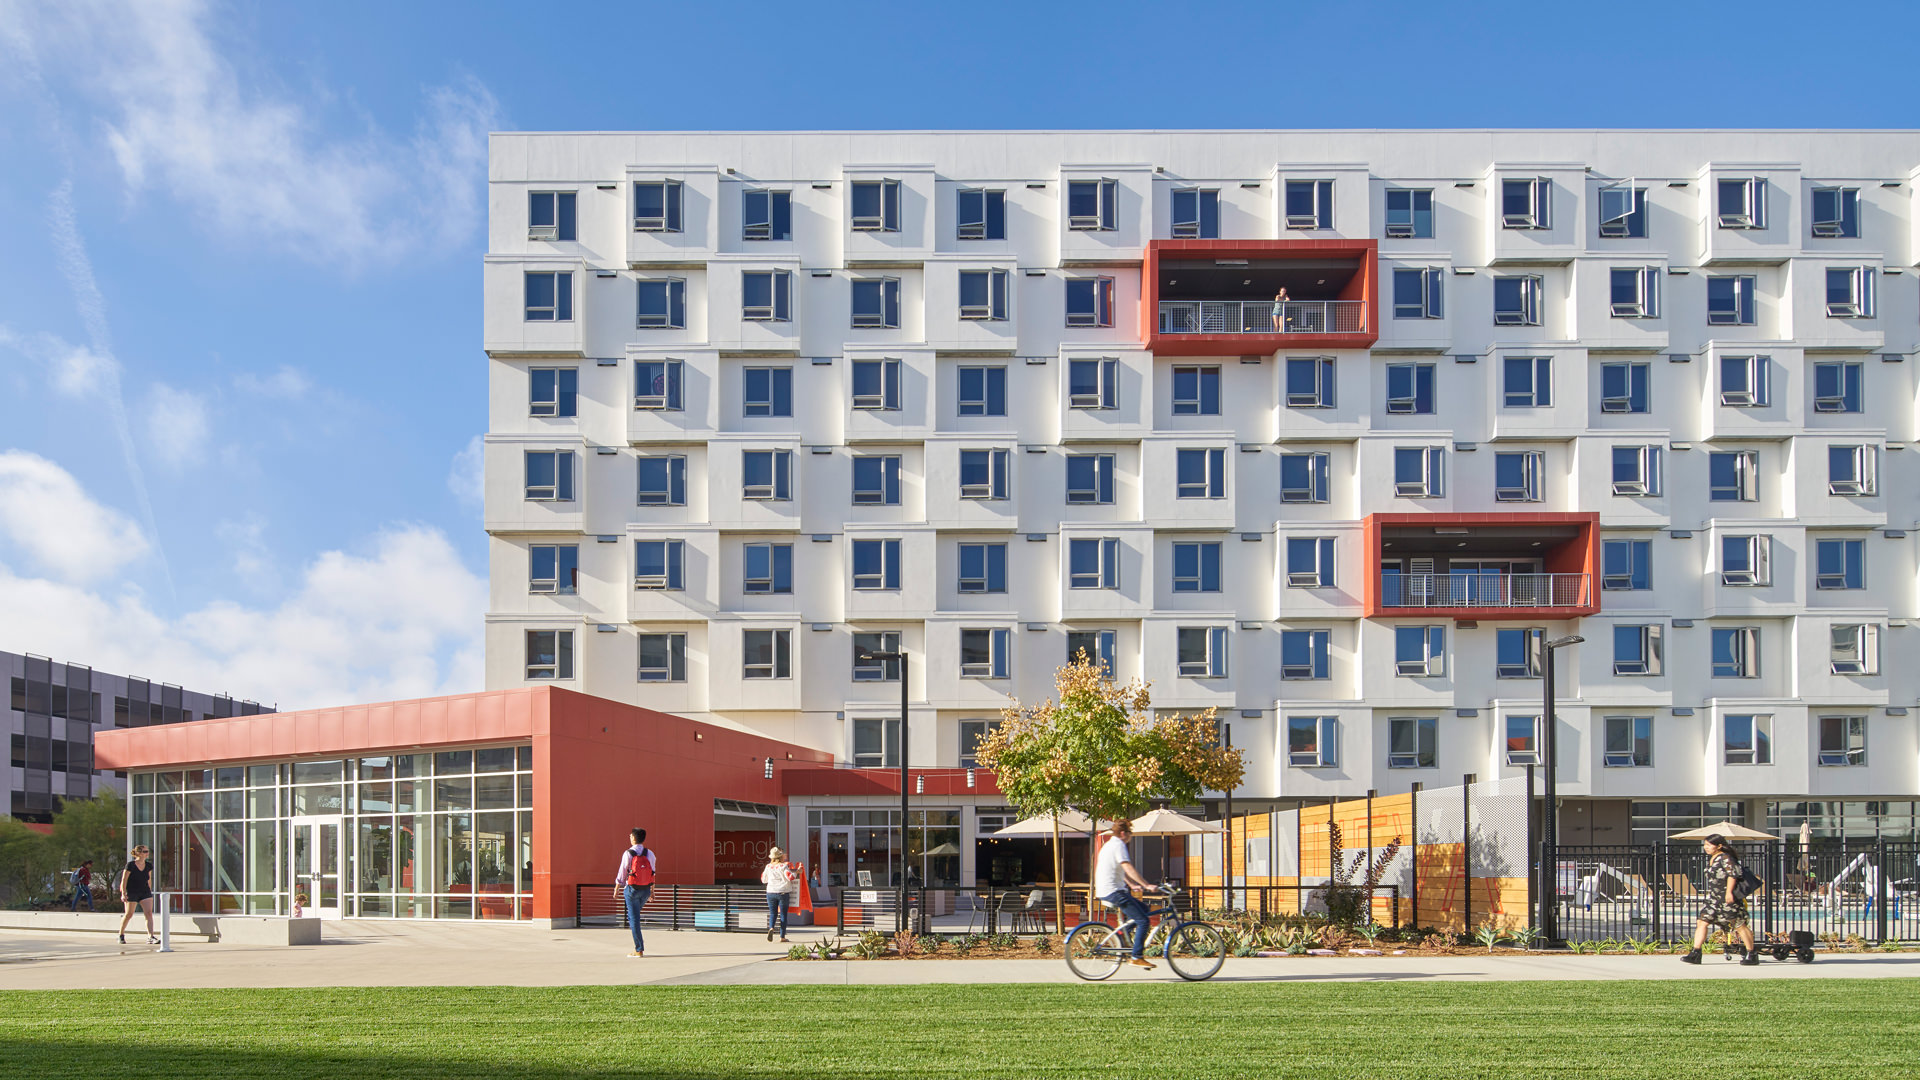 Rich Uncles: A Leader In Student Housing Real Estate Investing